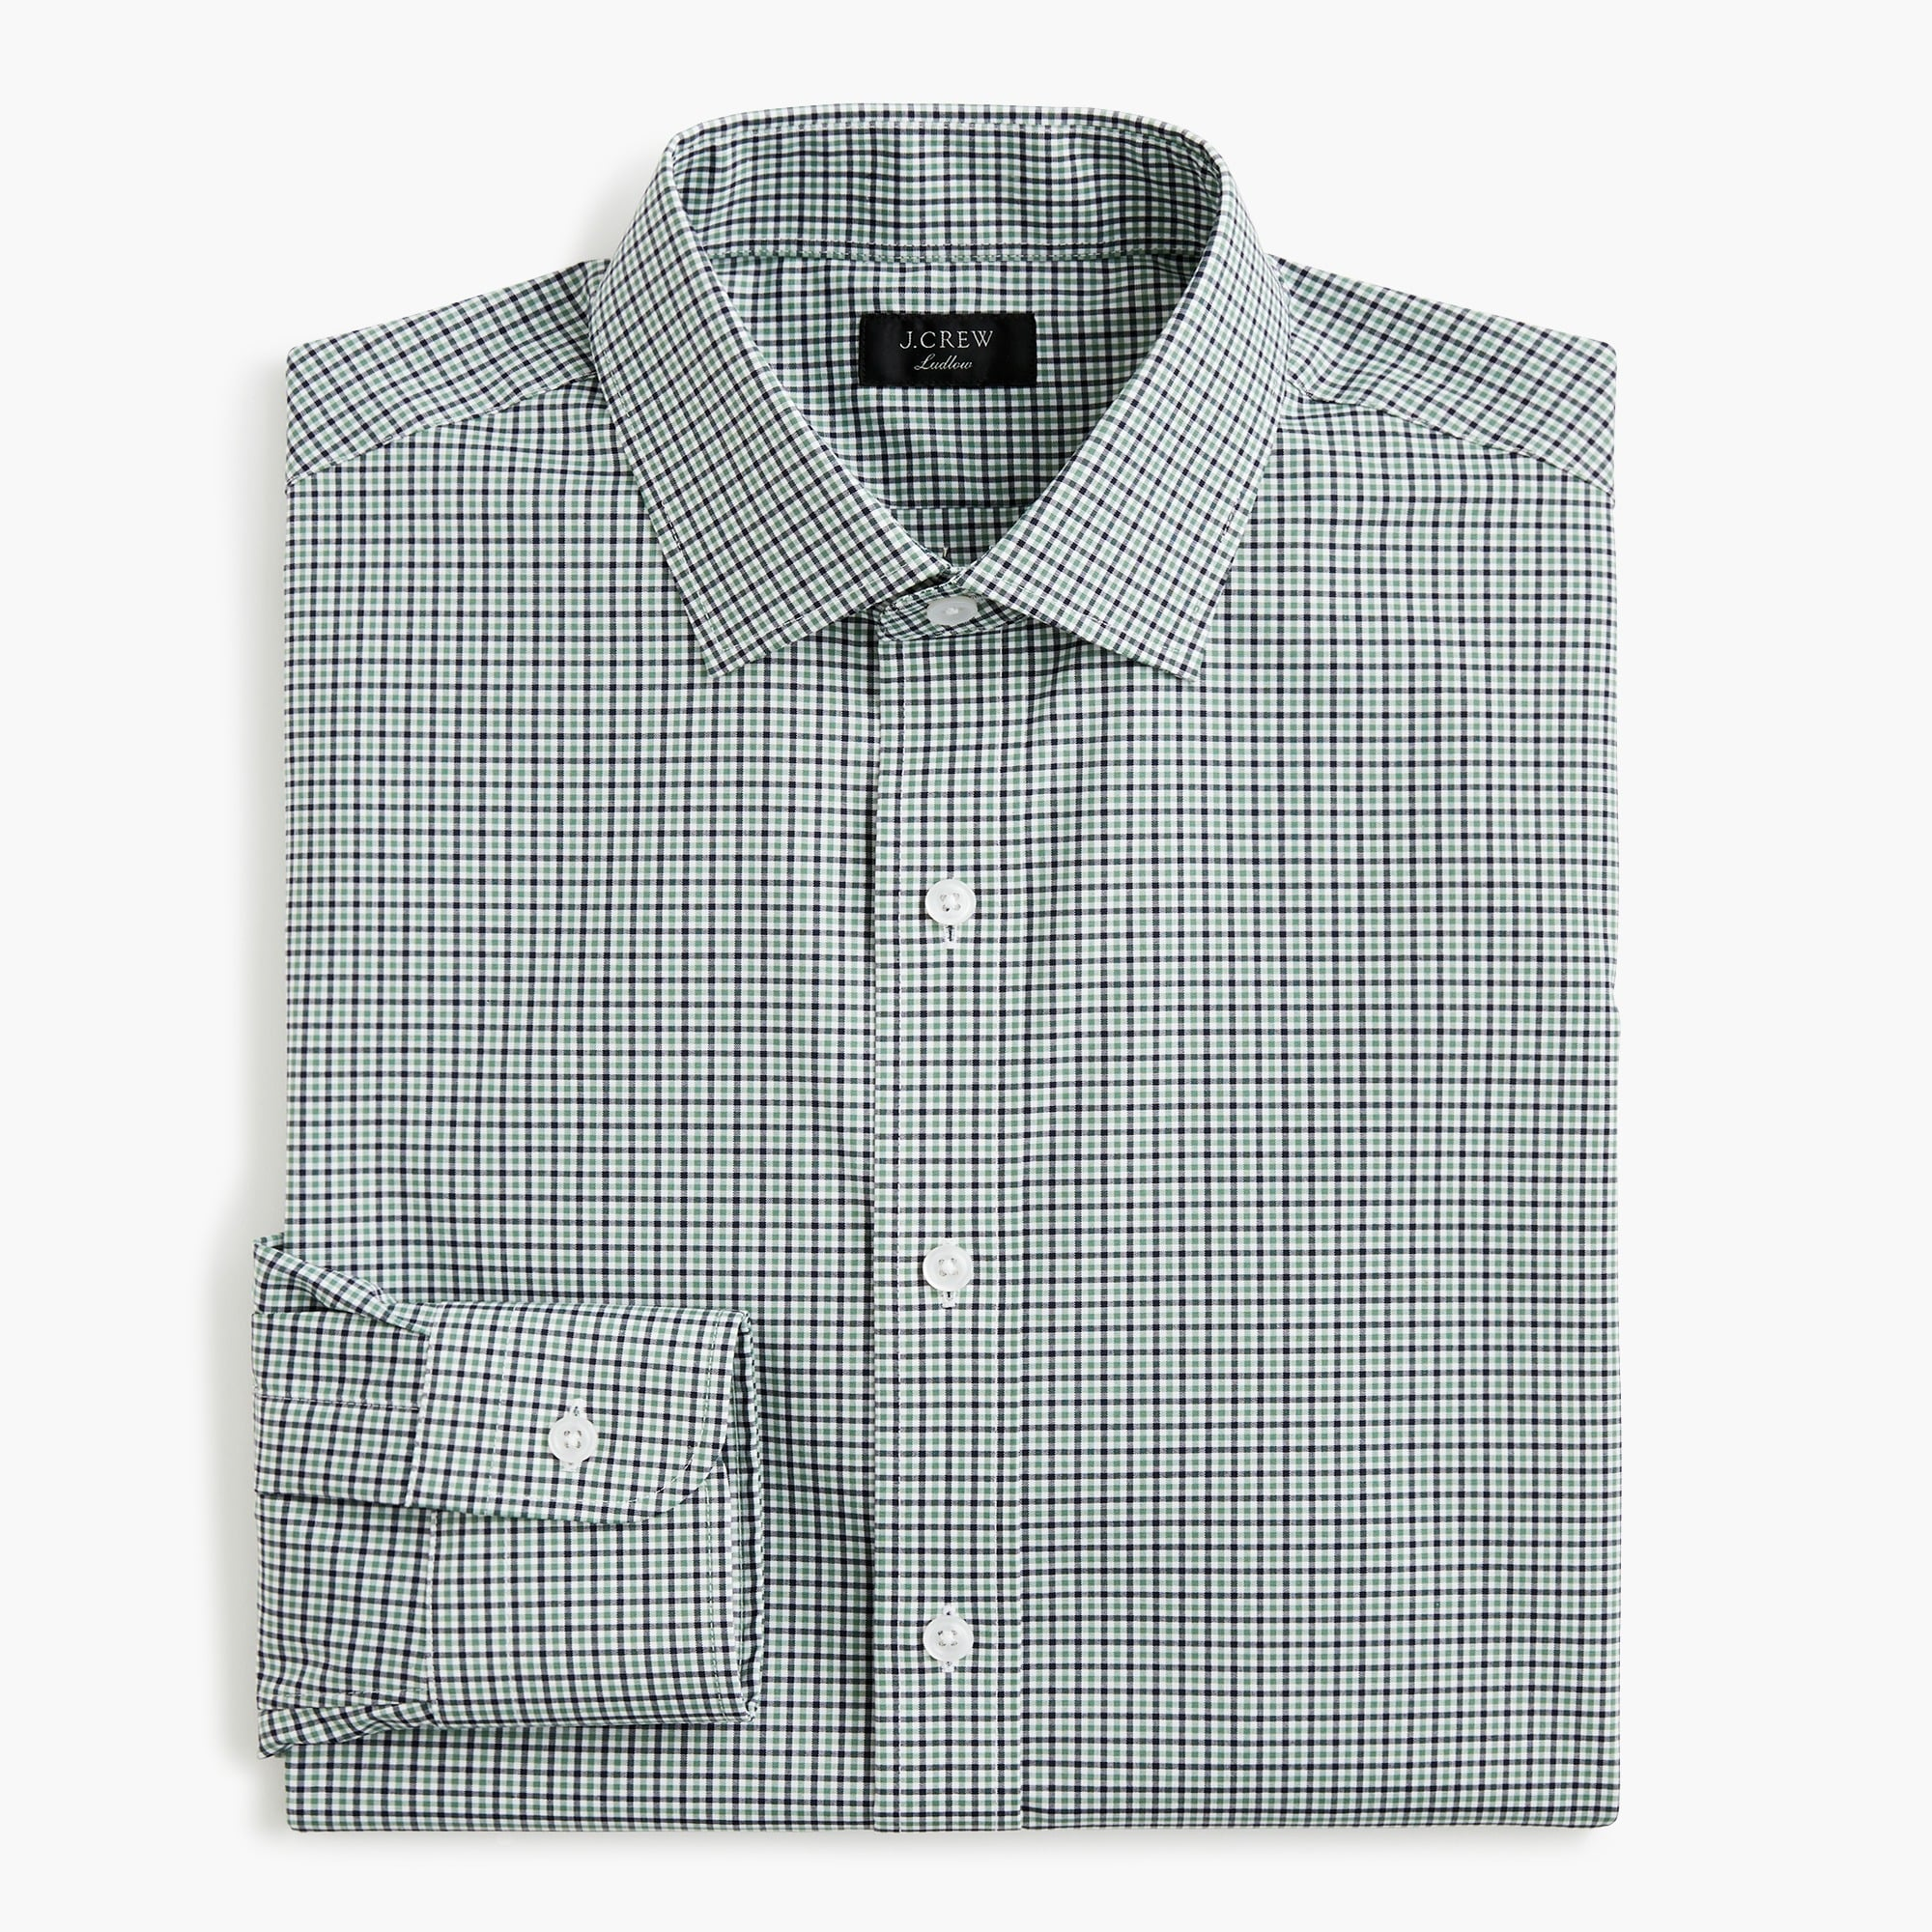 mens Ludlow Slim-fit stretch two-ply easy-care cotton dress shirt in blue tattersall